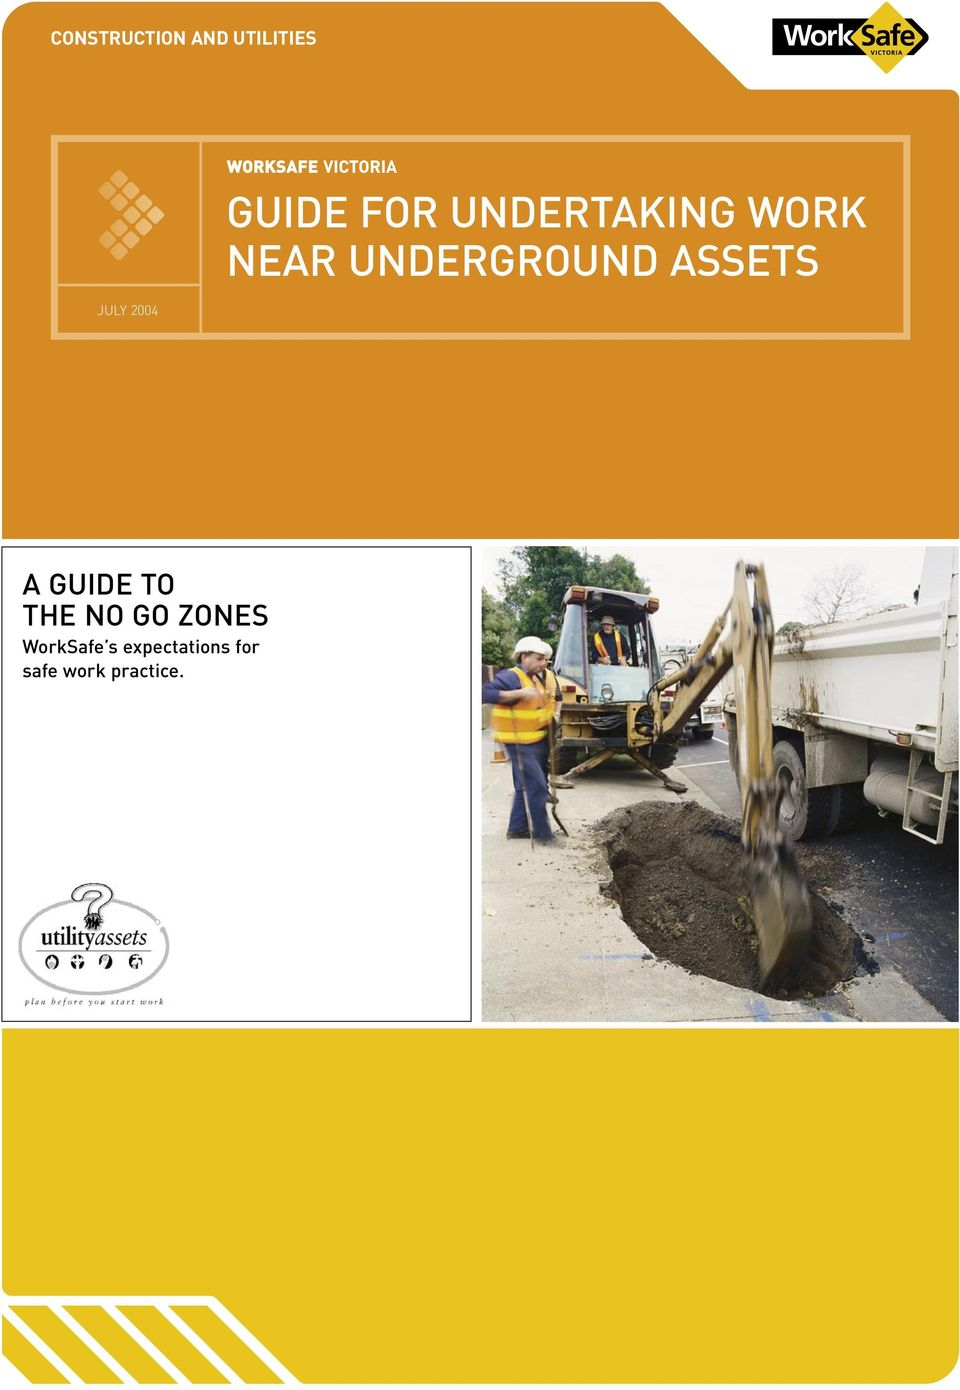 UNDERGROUND ASSETS A GUIDE TO THE NO GO